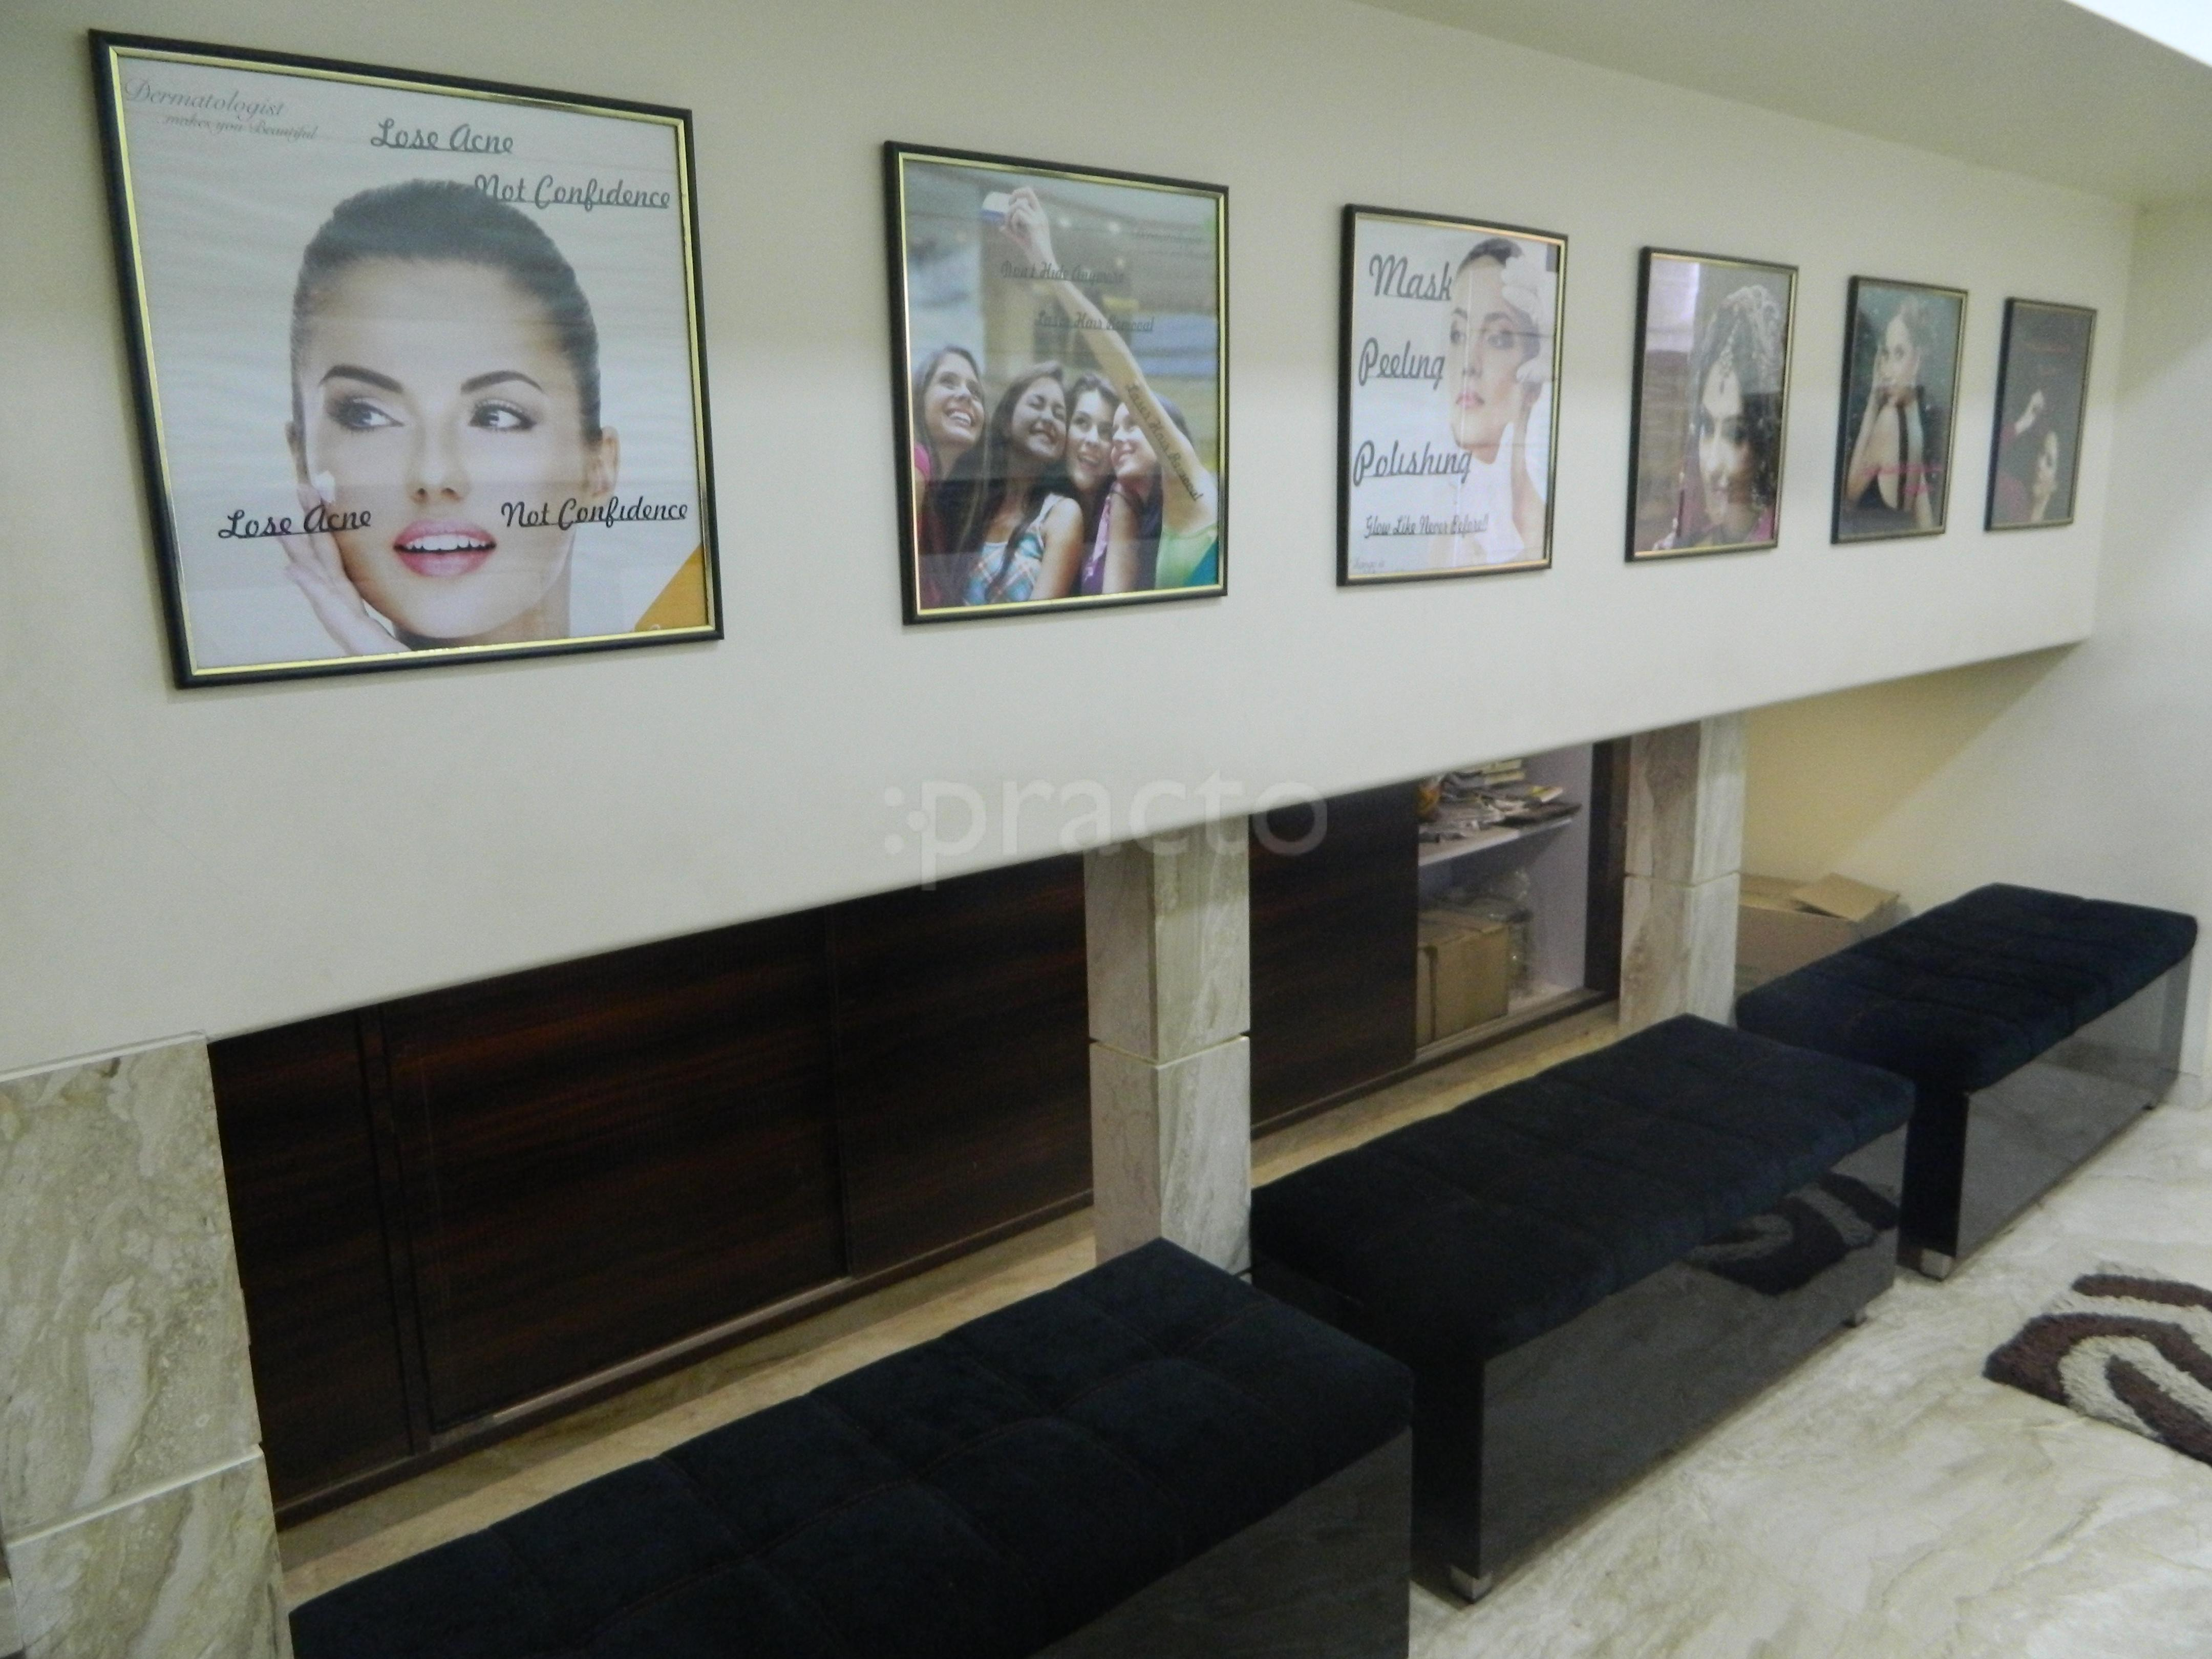 3d Exhibition In Borivali : Best eye clinics in borivali west mumbai book appointment view